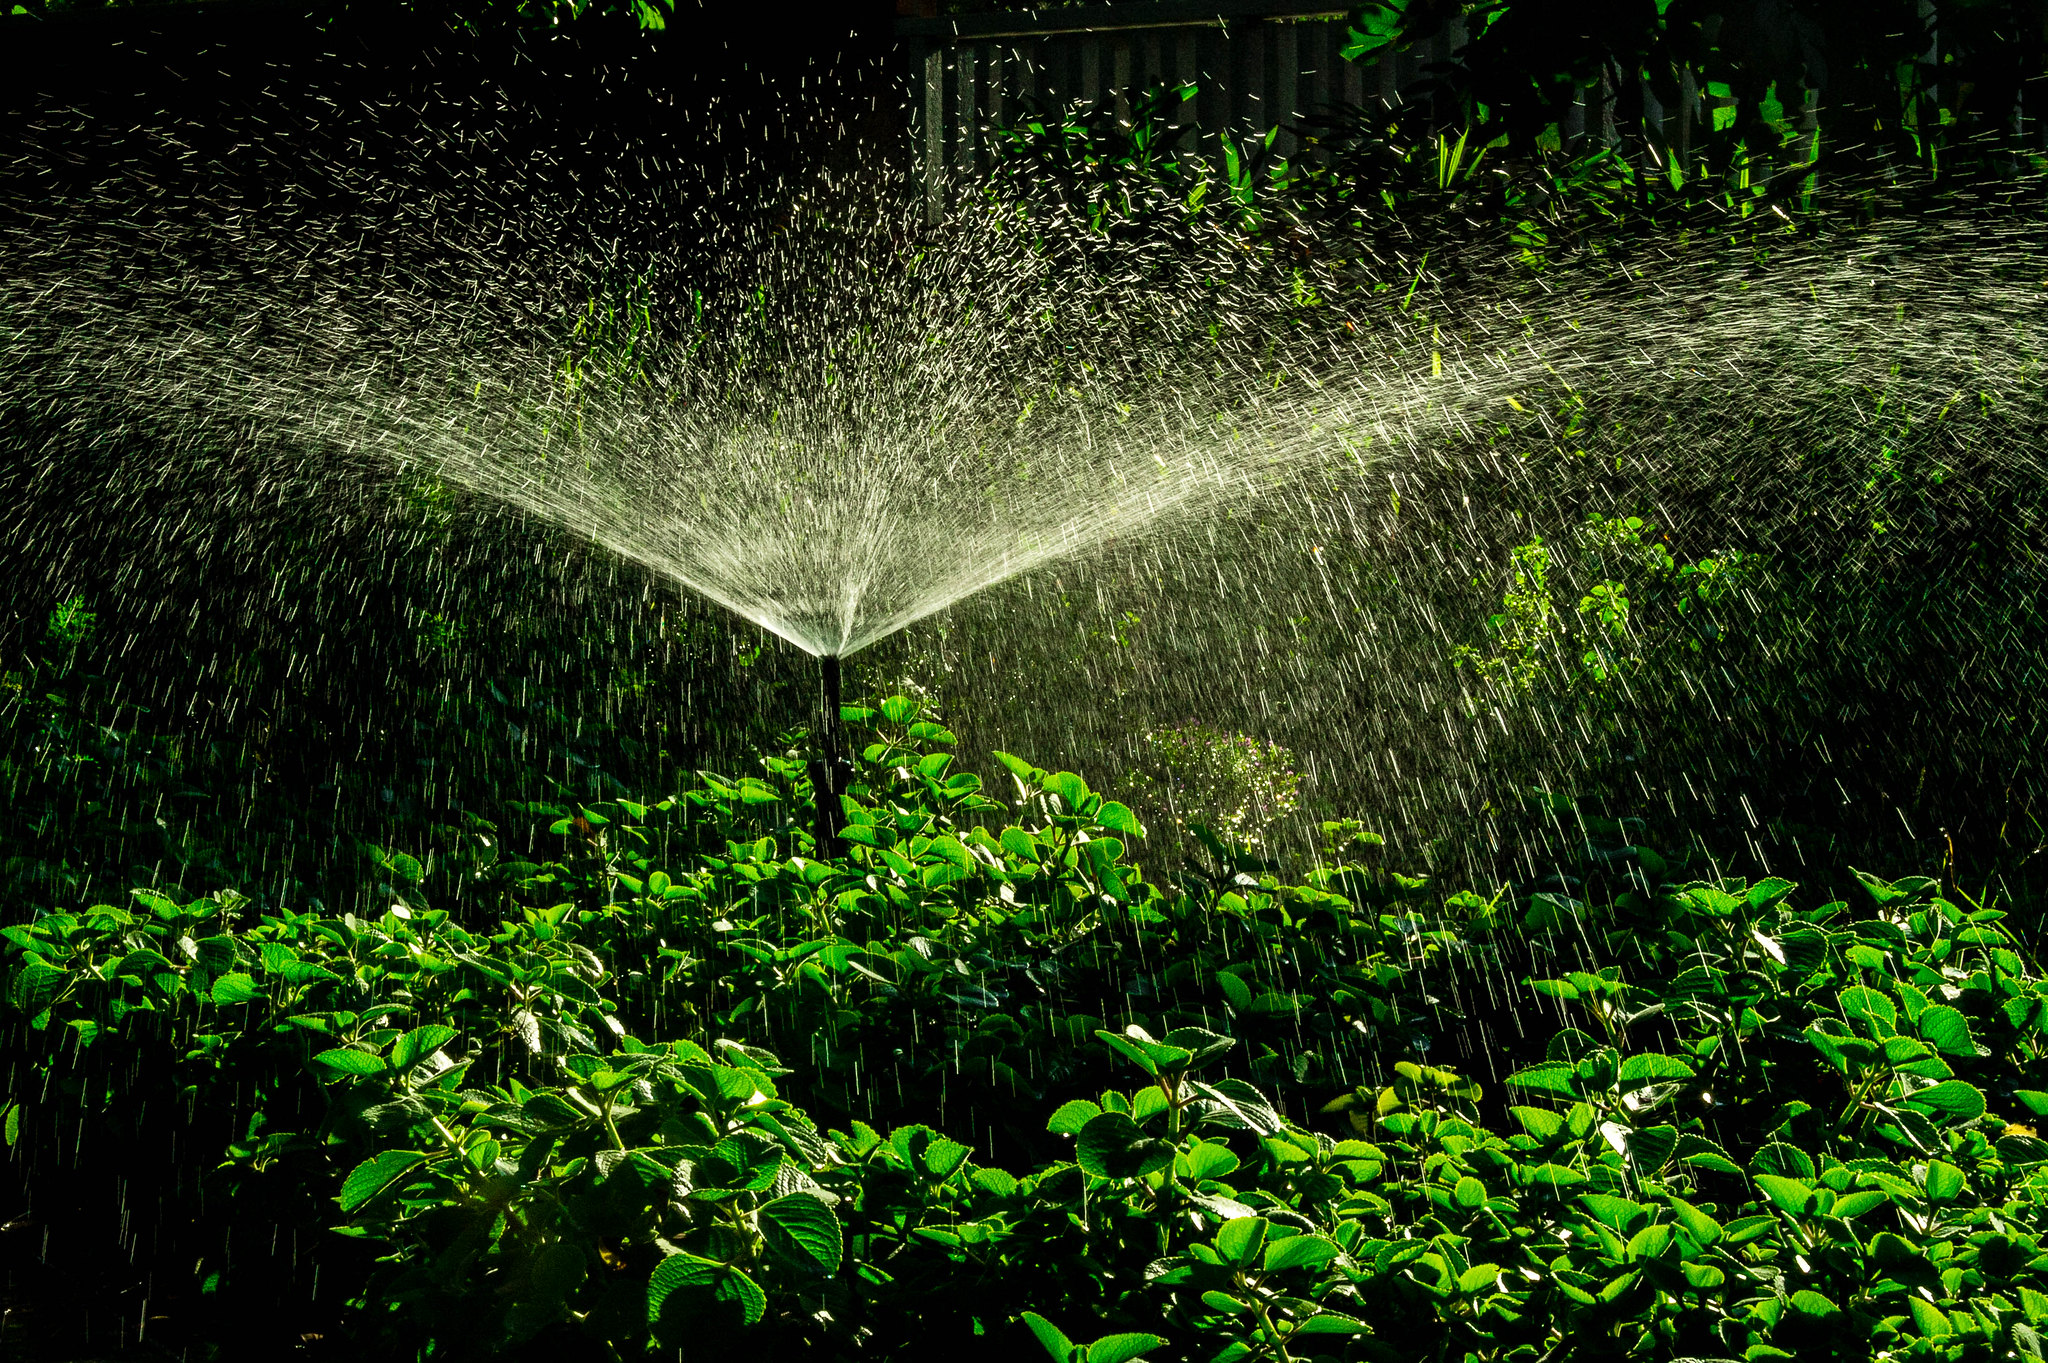 Water sprinkler and green plants